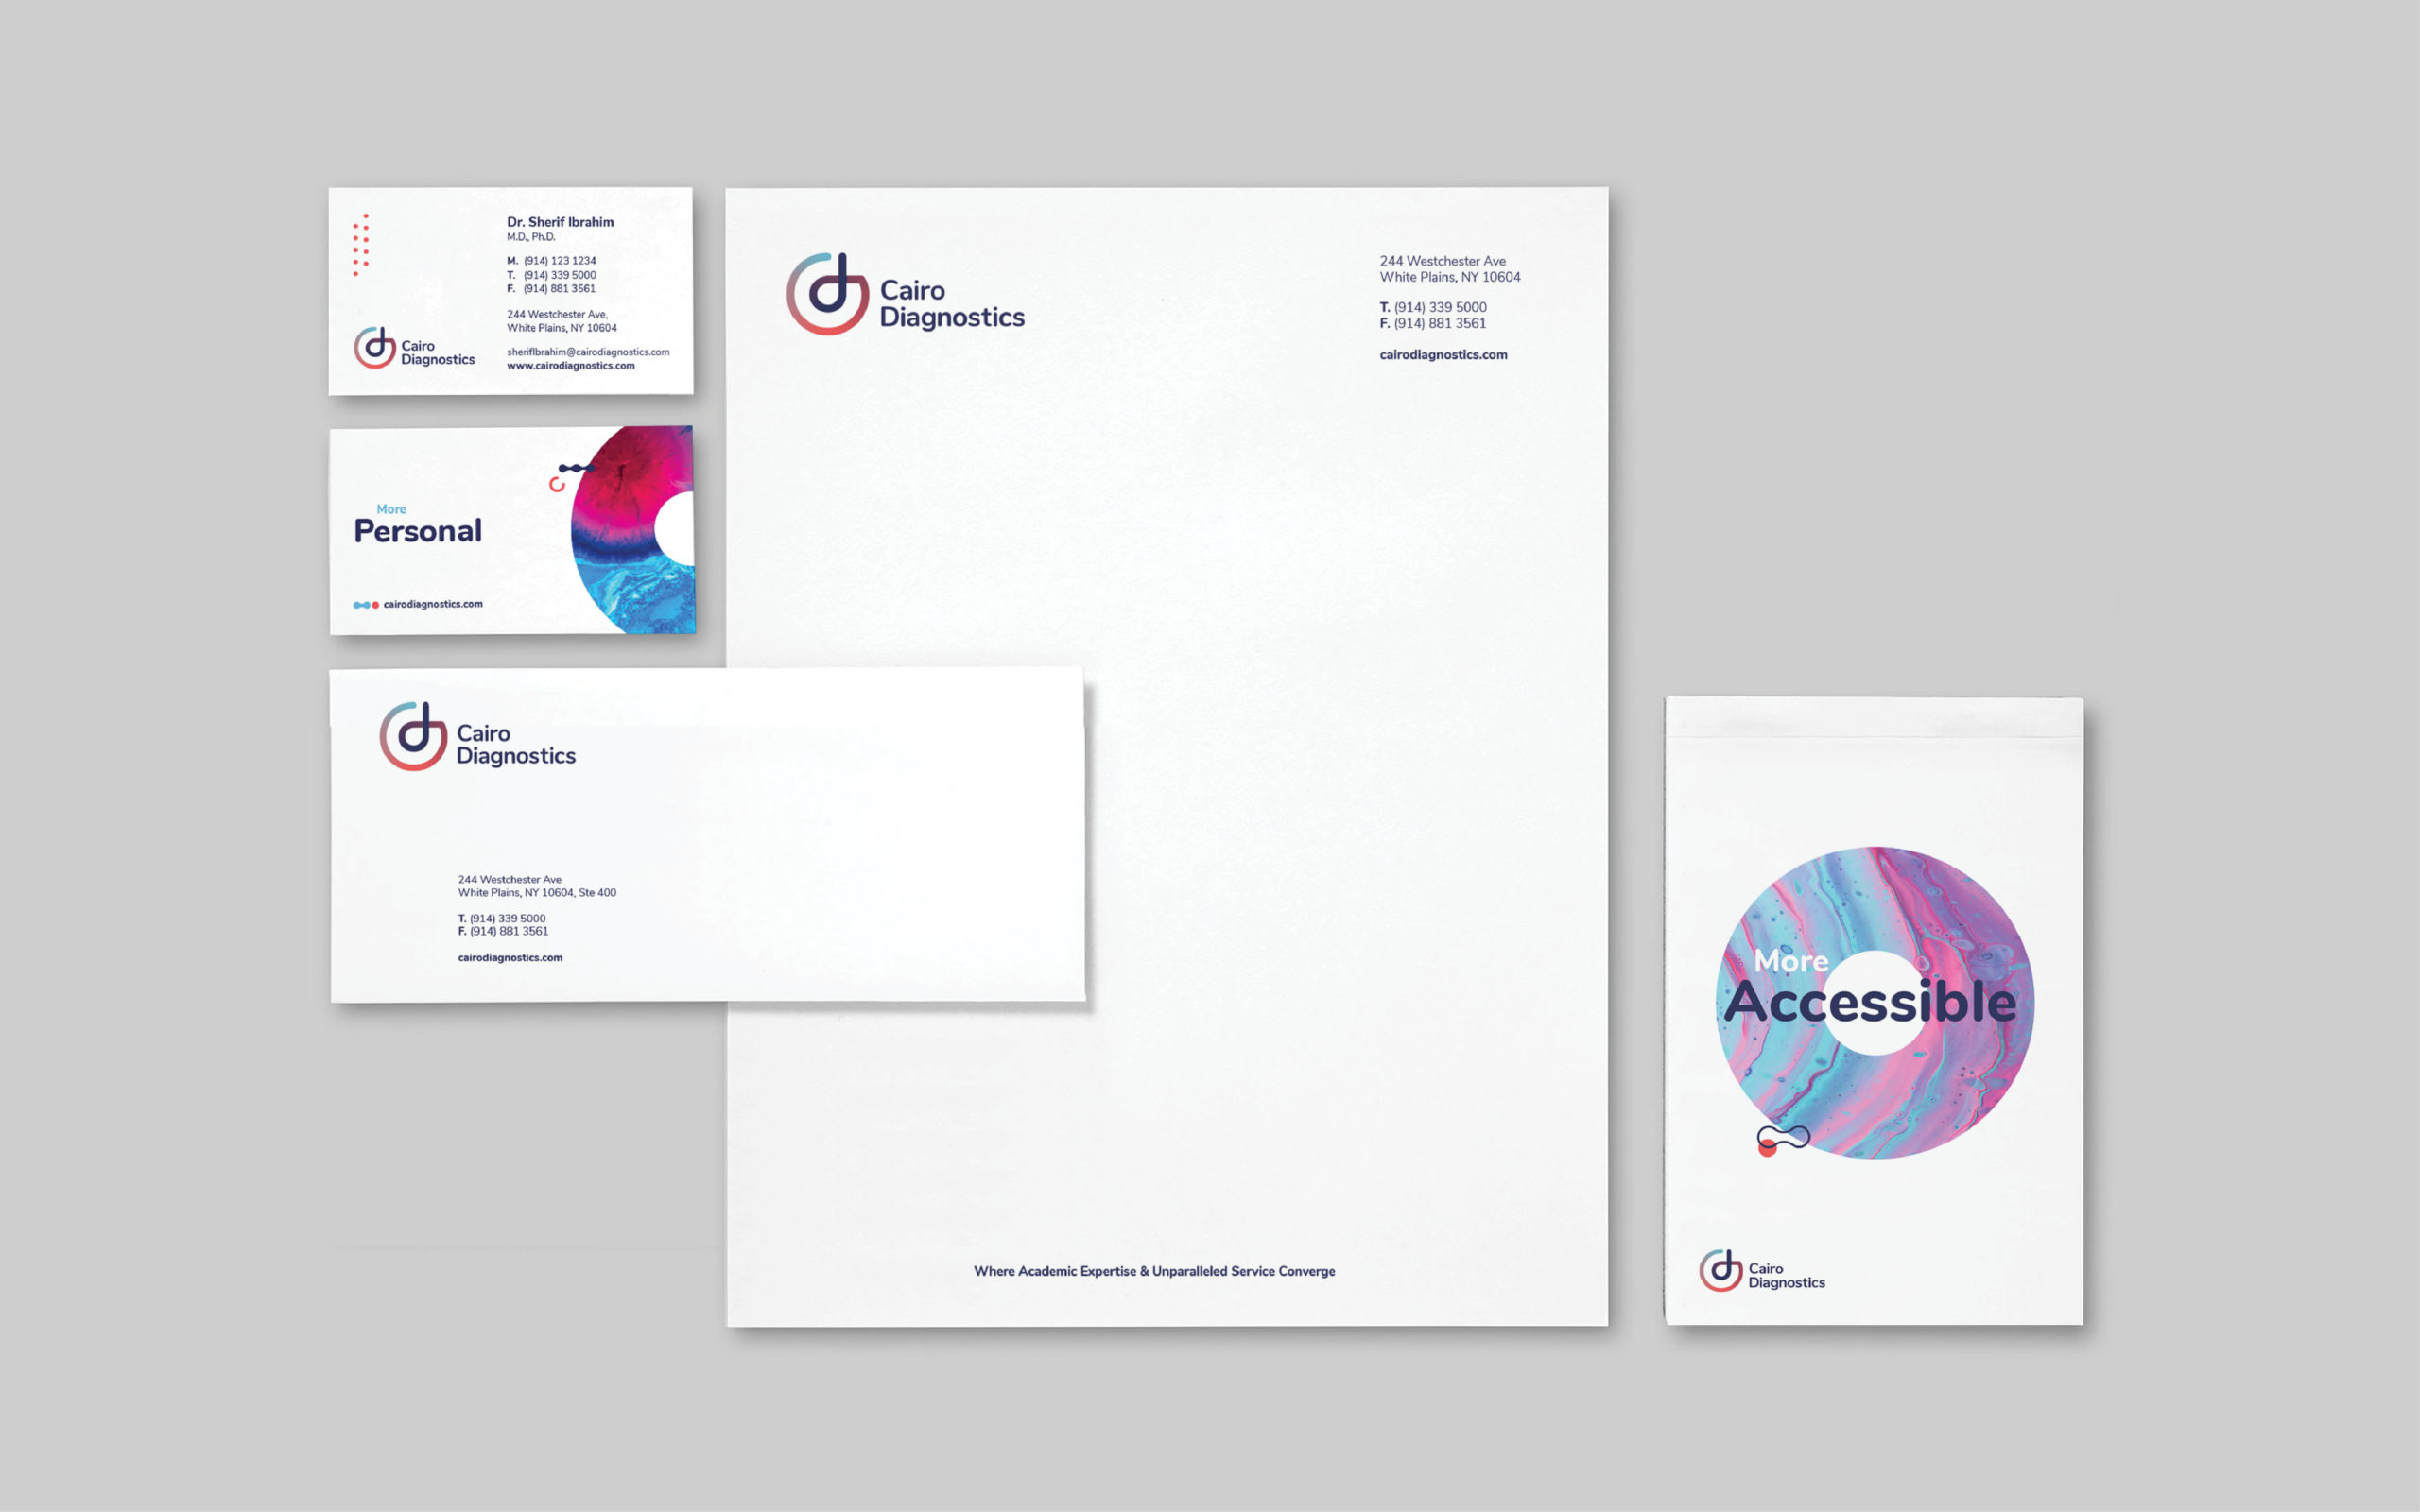 Cairo Diagnostics_Branding stationary